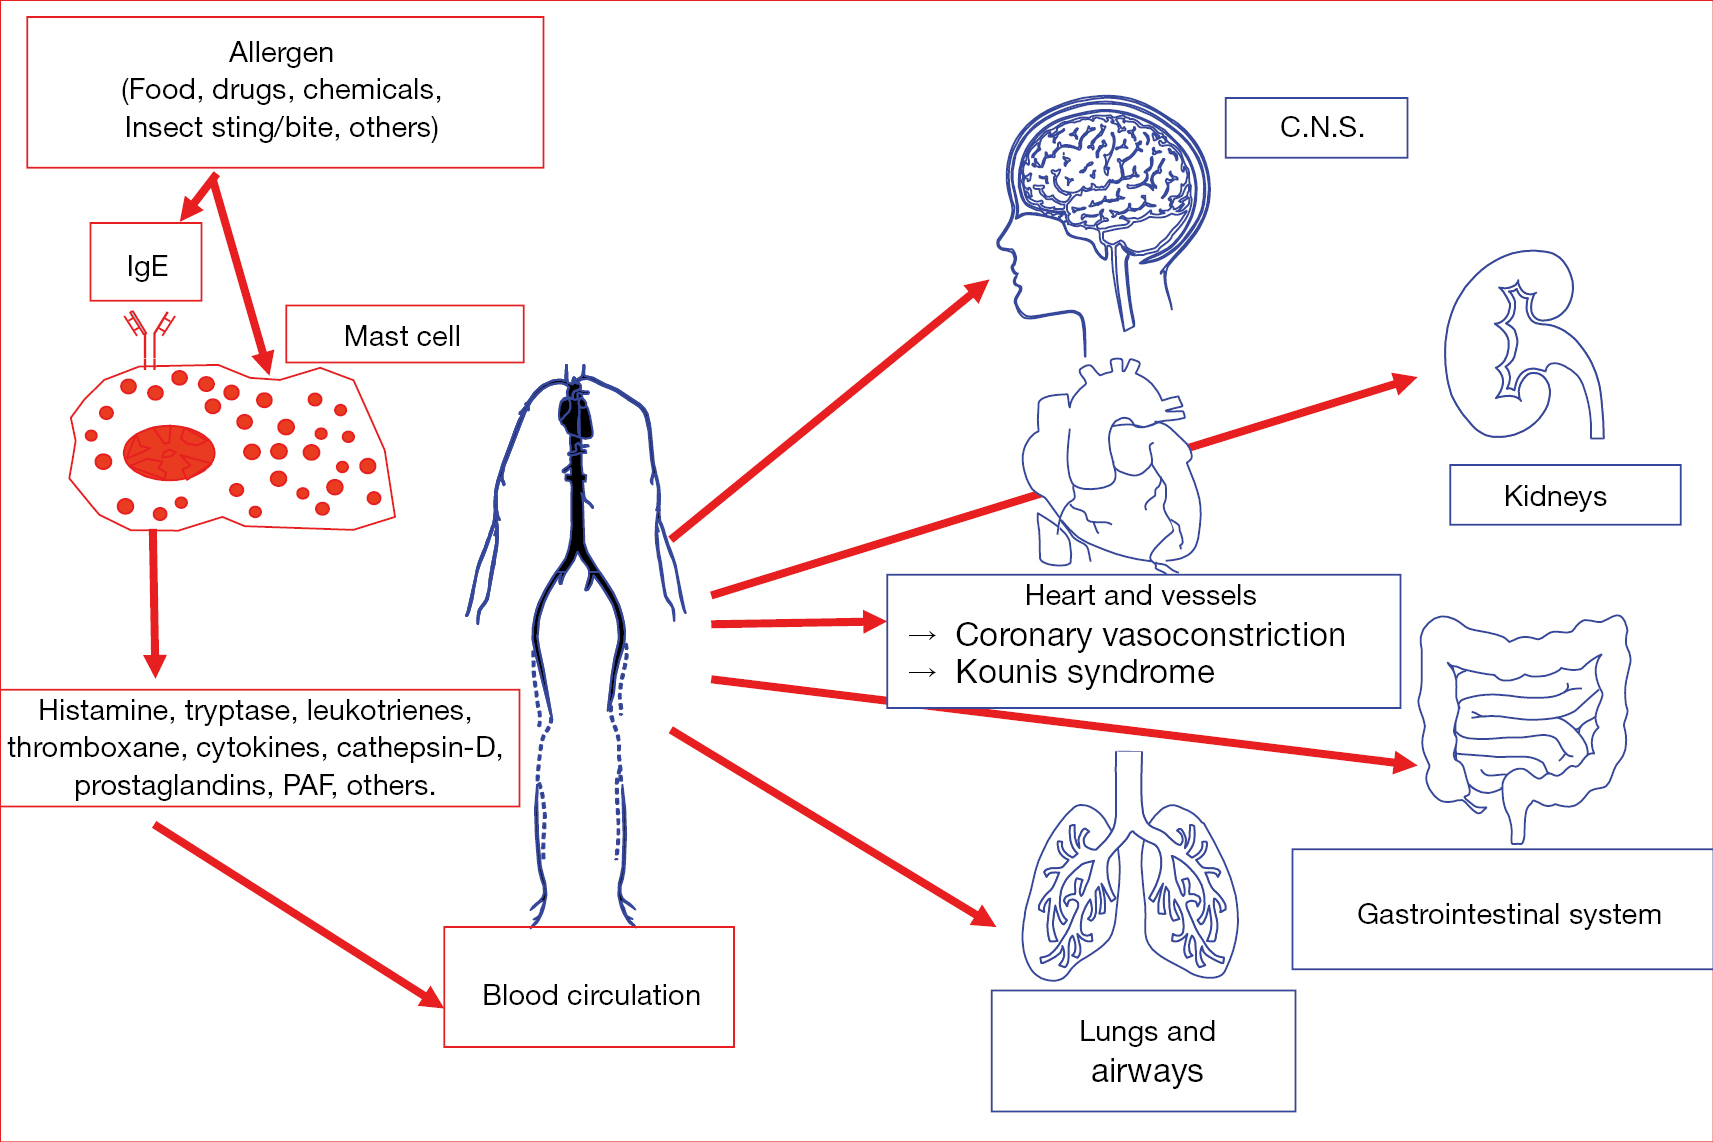 Anaphylactic cardiovascular collapse and Kounis syndrome: systemic